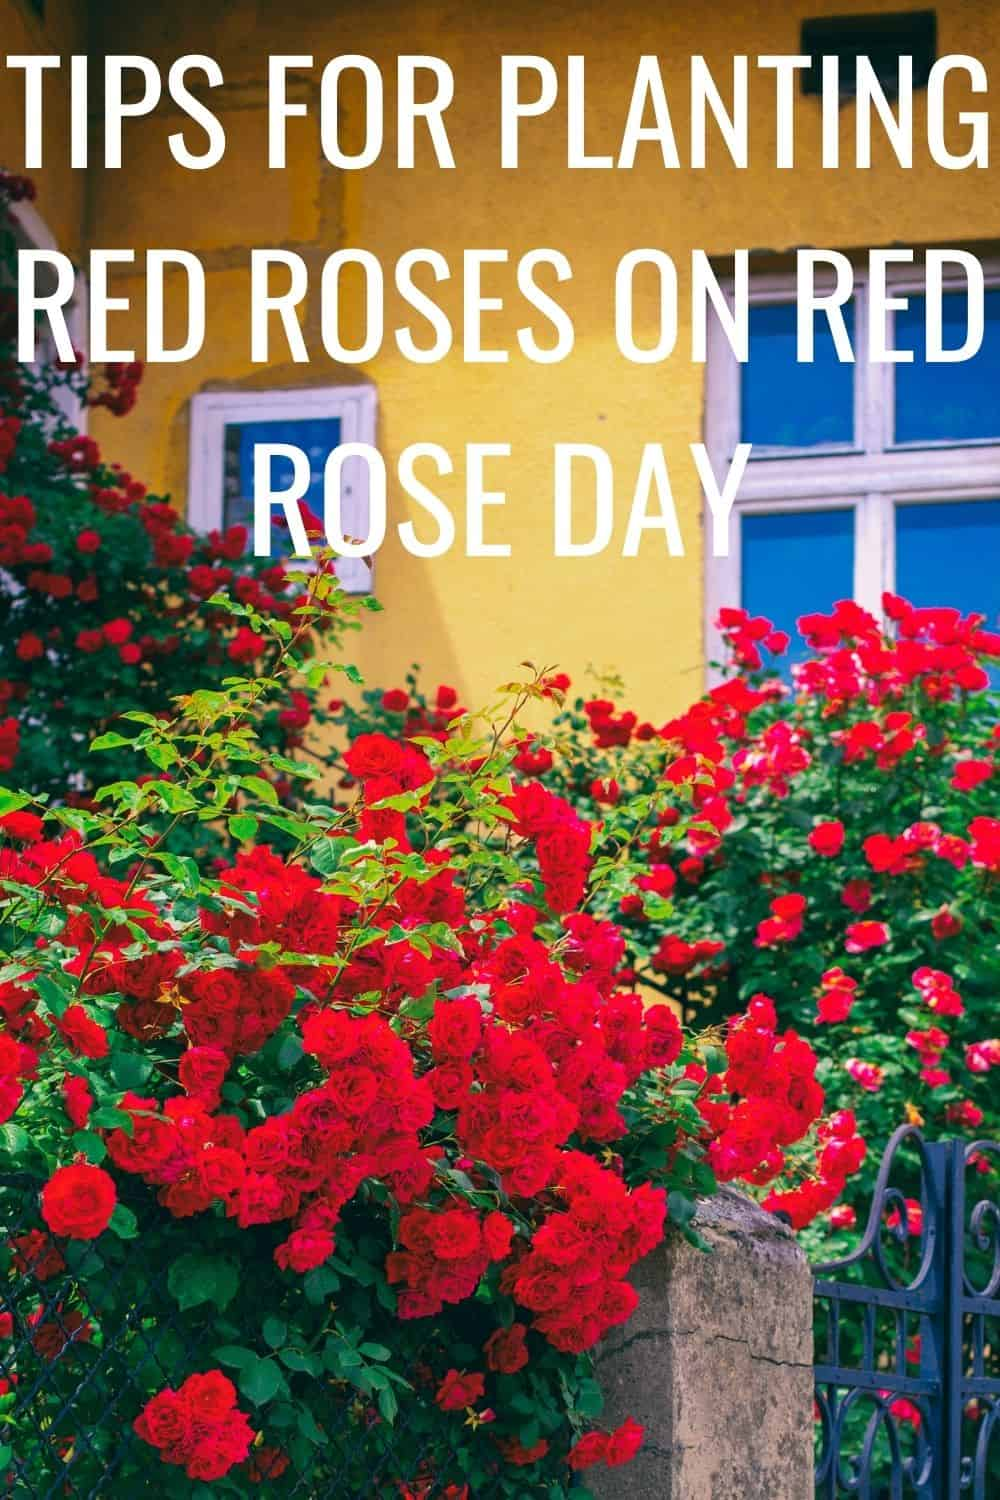 tips for planting red roses on red rose day